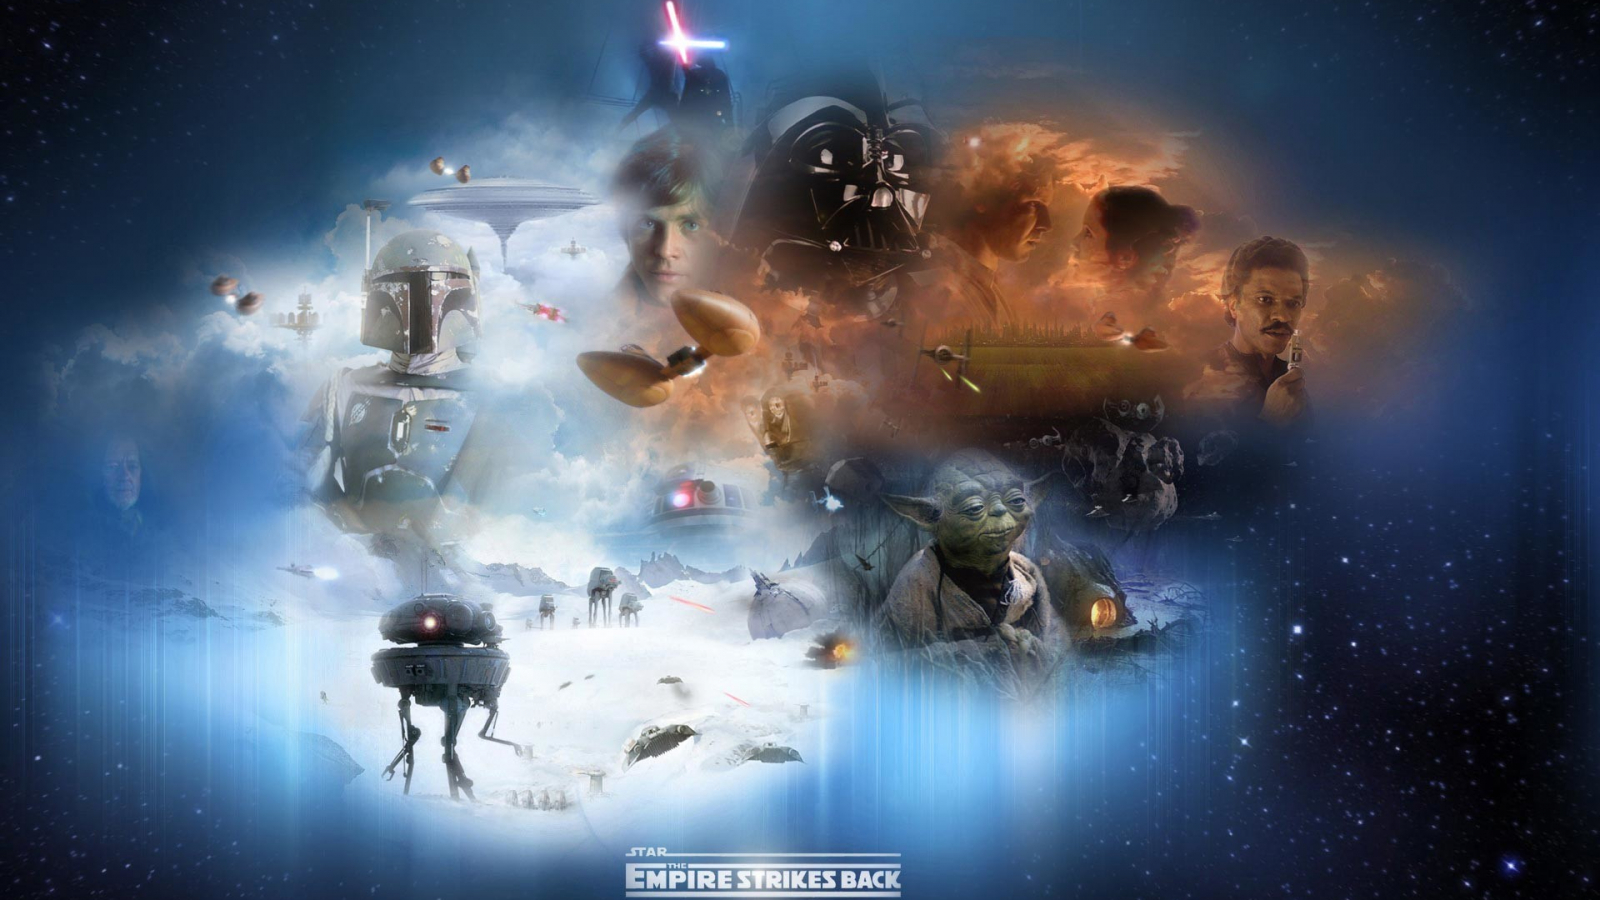 Free Download Star Wars Empire Strikes Back Wallpaper 71 Images